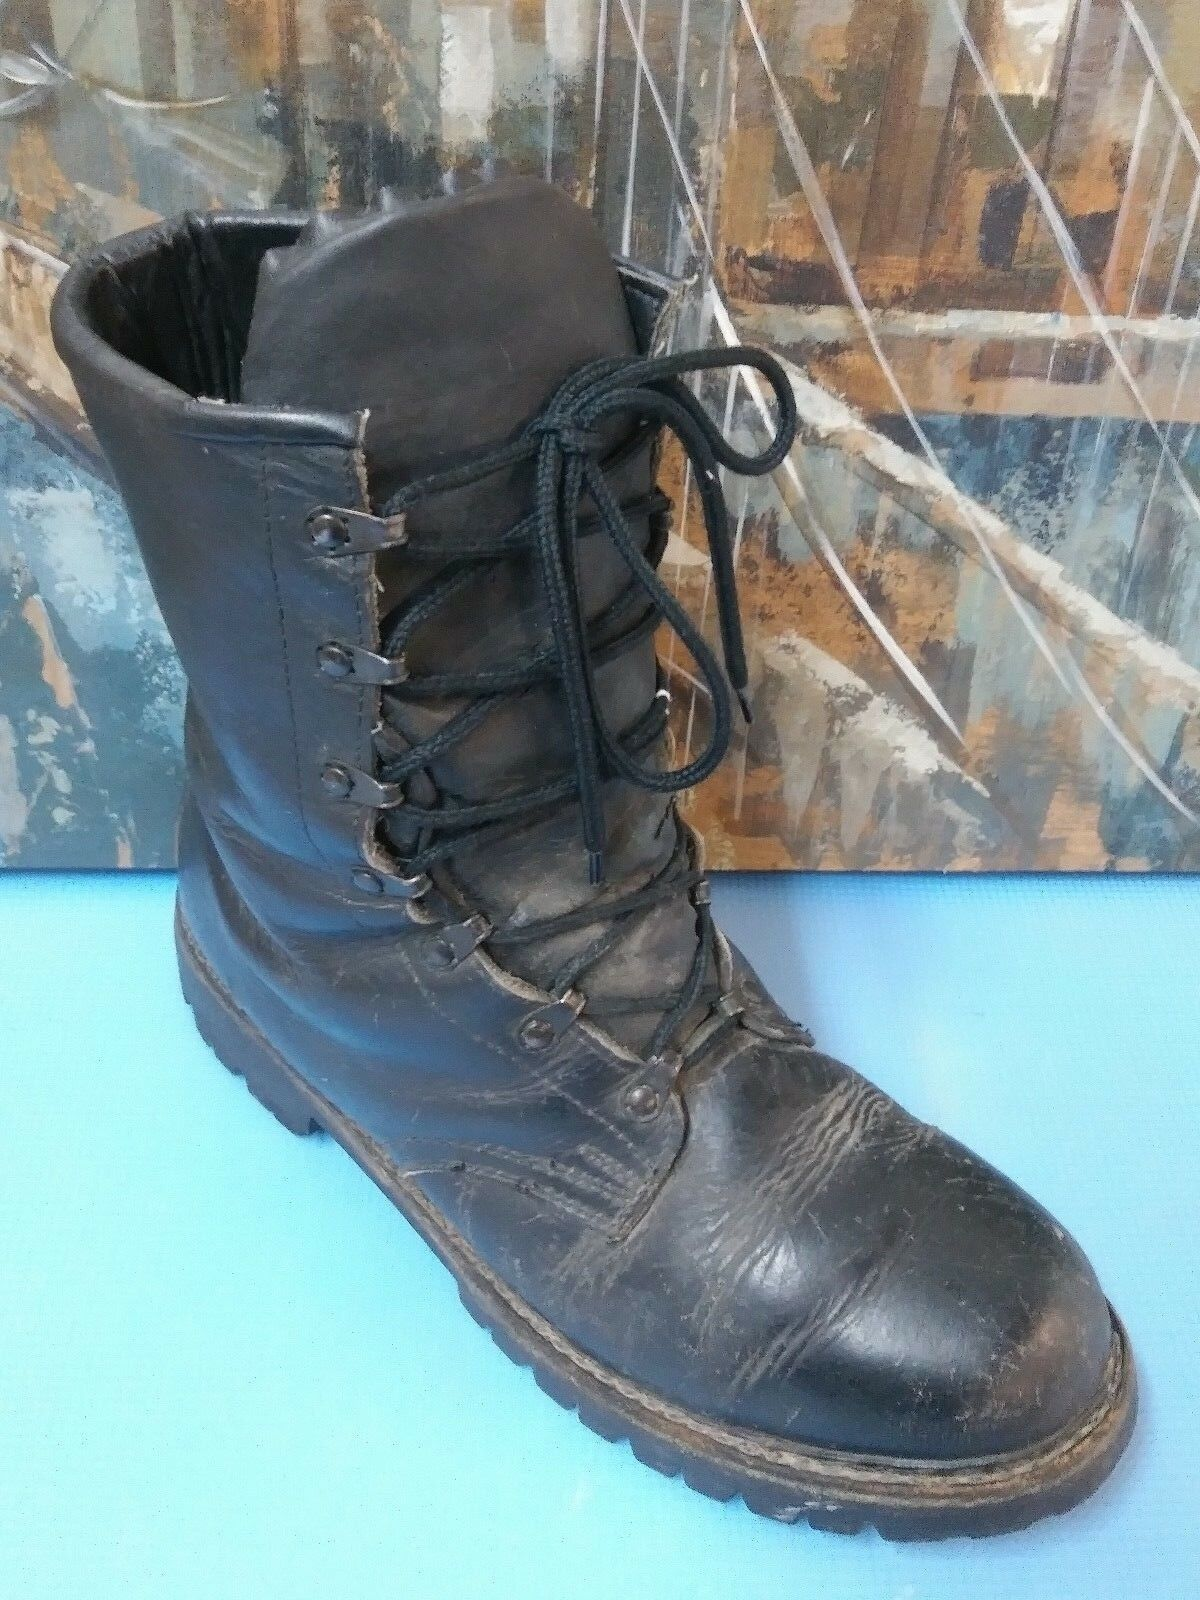 FUBKOMFORT black leather army work boots size 12.5